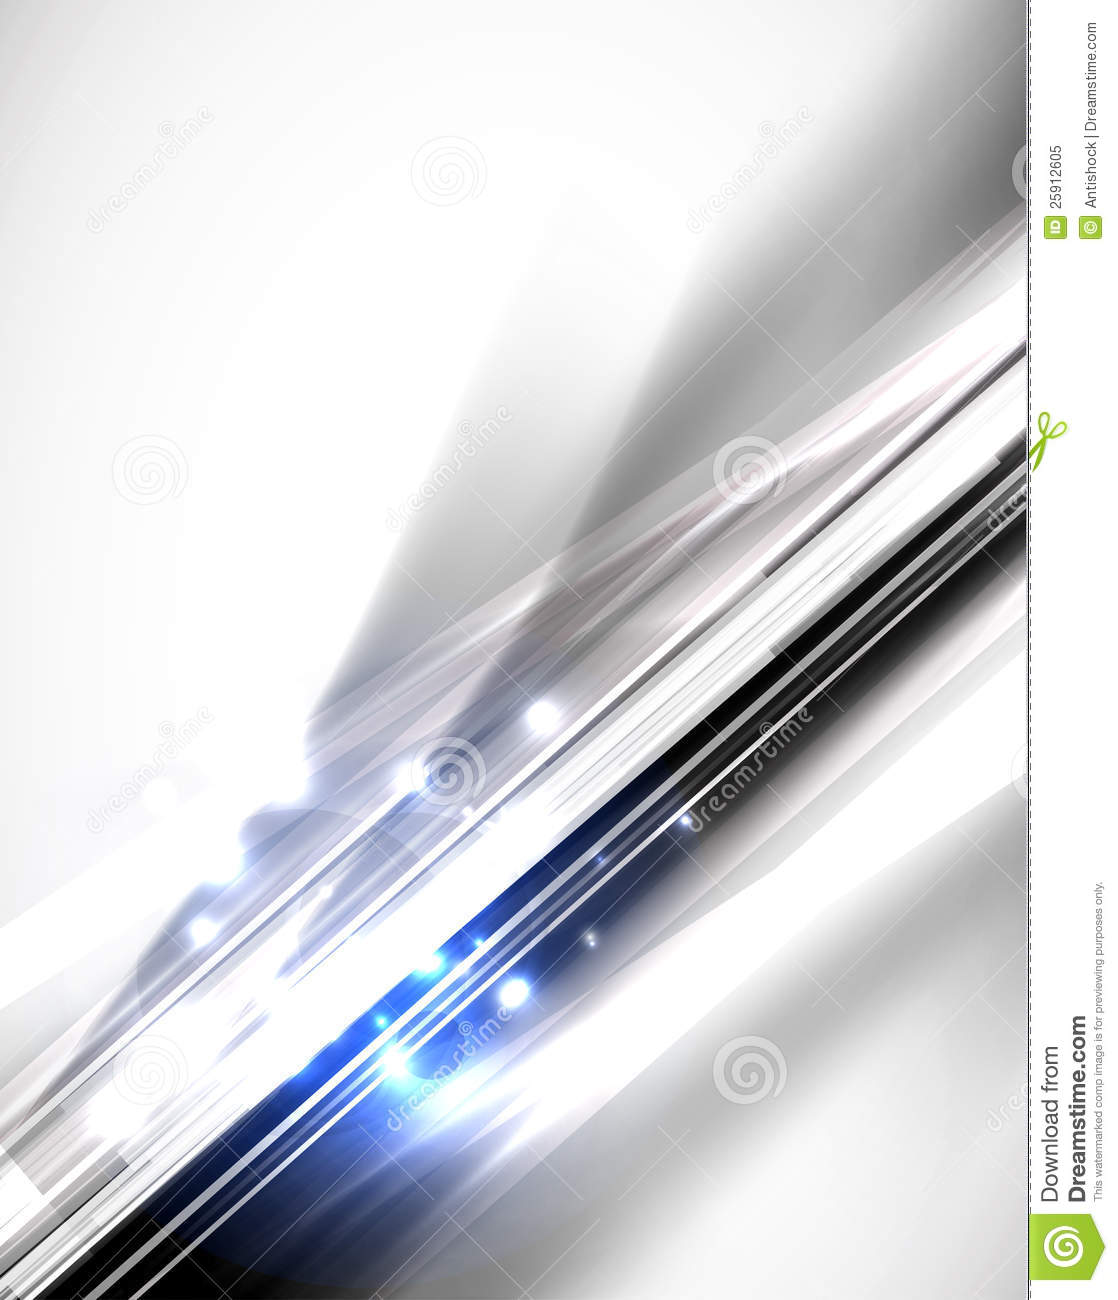 Background image grayscale - Abstract Background Blue Geometric Grayscale